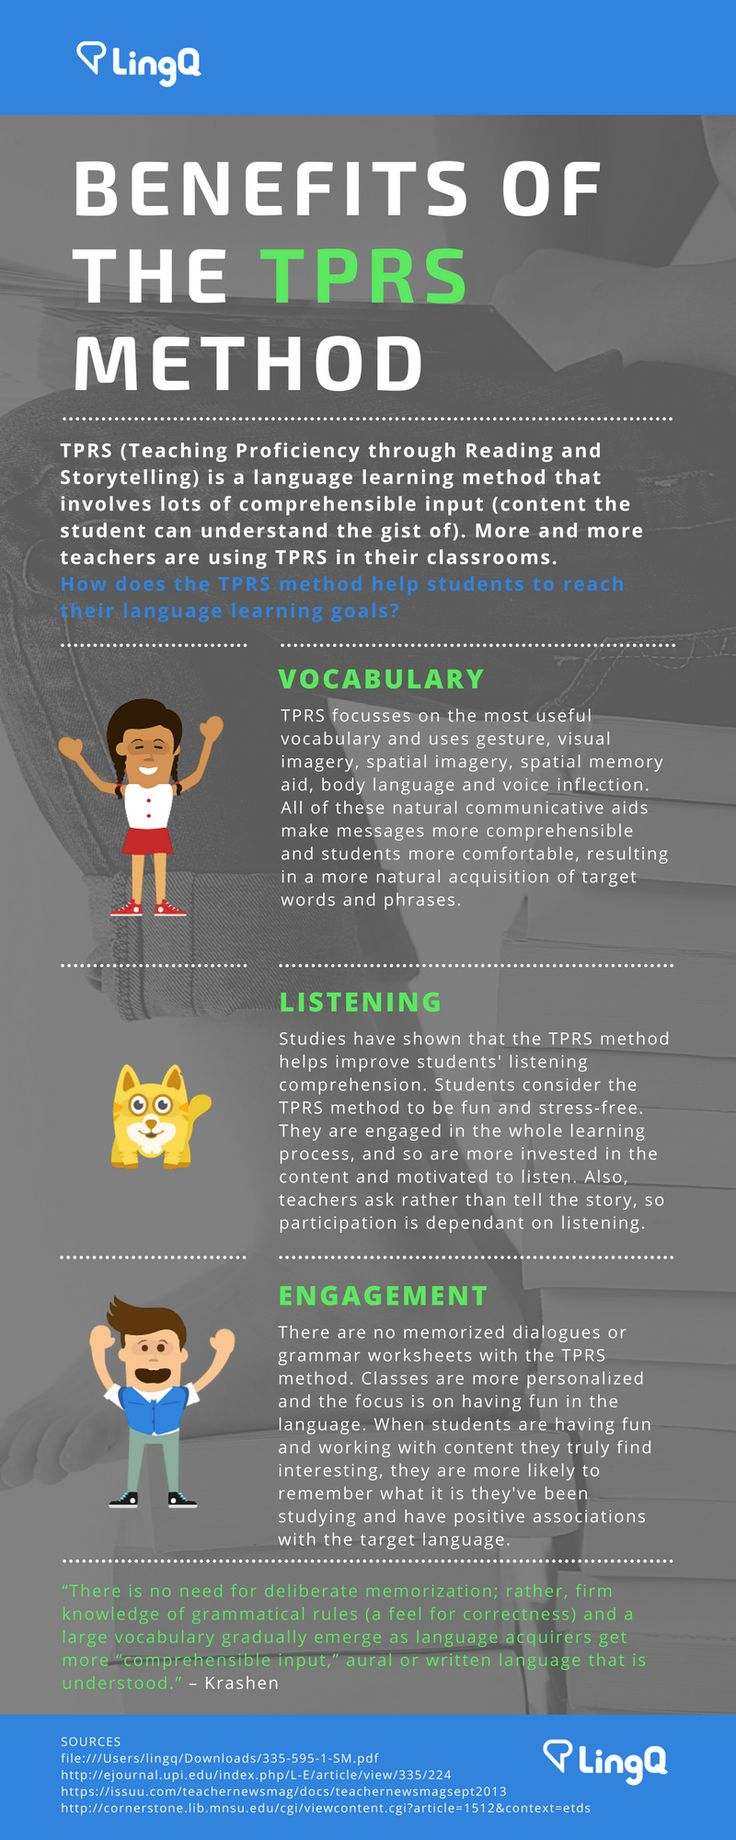 """Jahrine Lebel sur Twitter : """"#TPRS is being used by more and more language teachers around the world. How does this #CI method help students? https://t.co/A9lKchbE3l"""""""